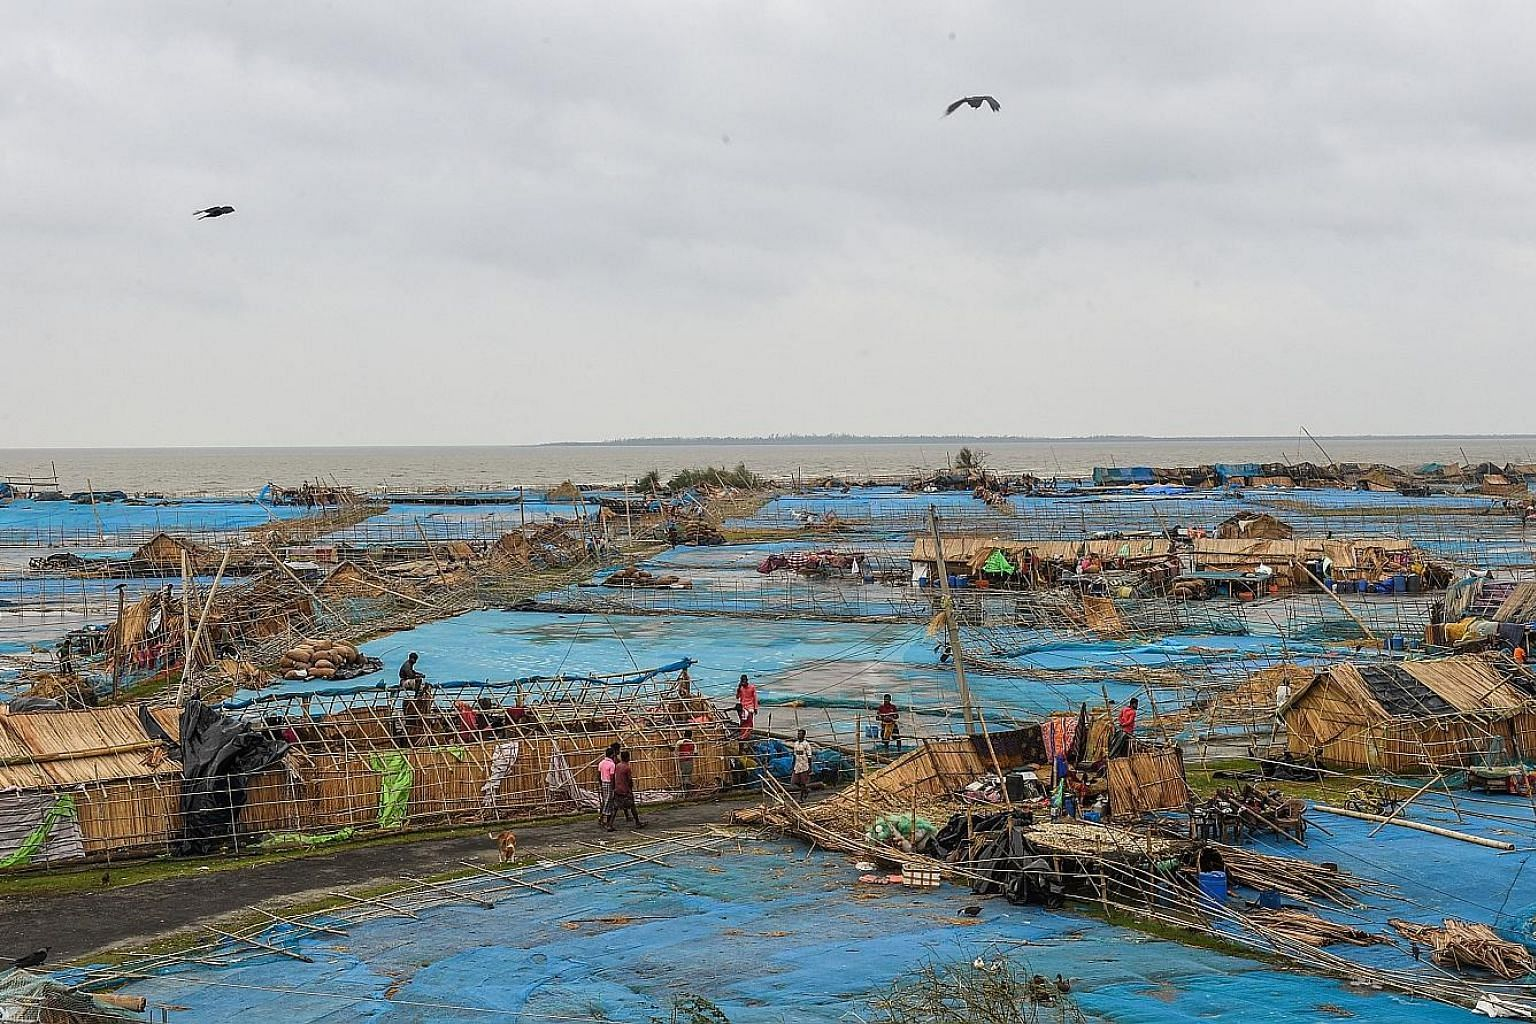 A fishing village in India reduced to rubble after Cyclone Bulbul swept the region late last Saturday. The cyclone killed 12 people in Bangladesh - 11 from falling trees - and 12 in India's West Bengal and Odisha states. Bangladesh's low-lying coast